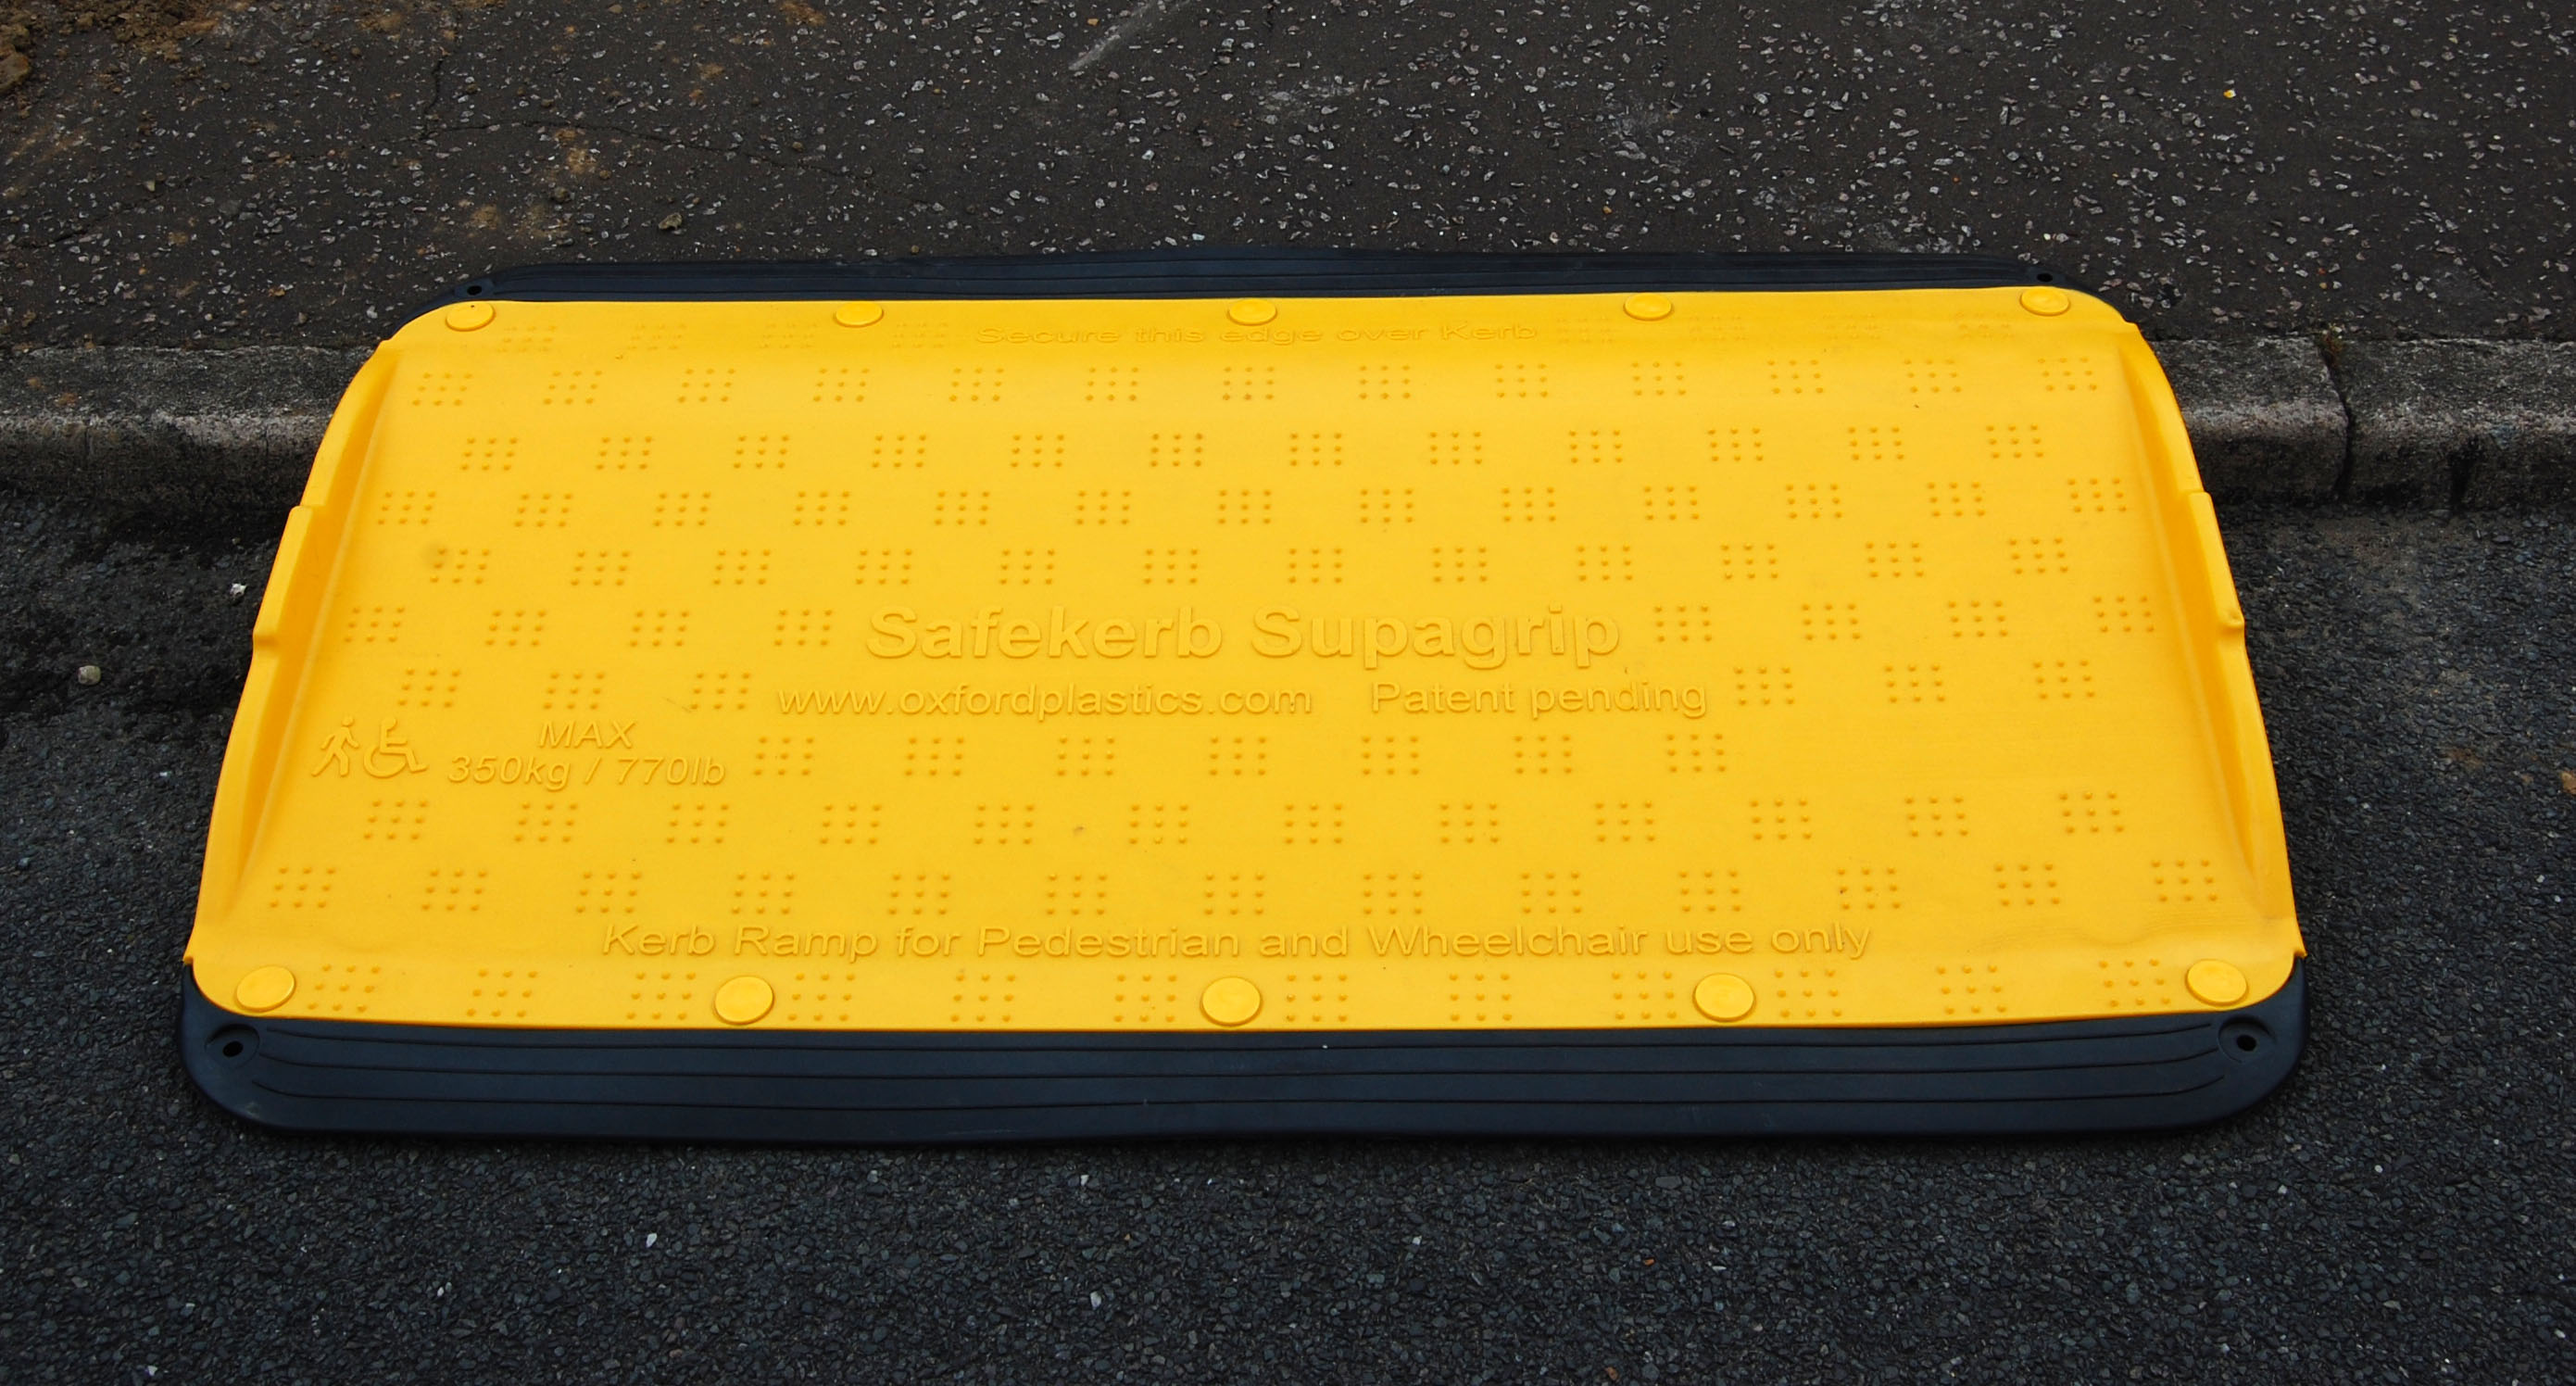 SupaGrip SafeKerb Wheelchair Ramp